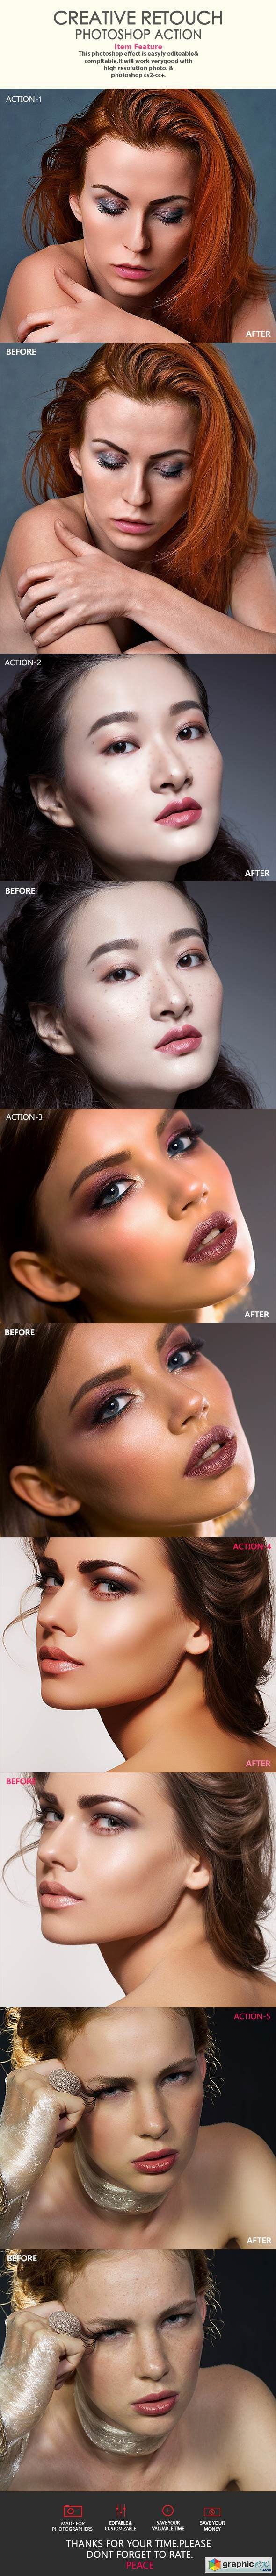 Creative Retouch Photoshop Action Photo Effects